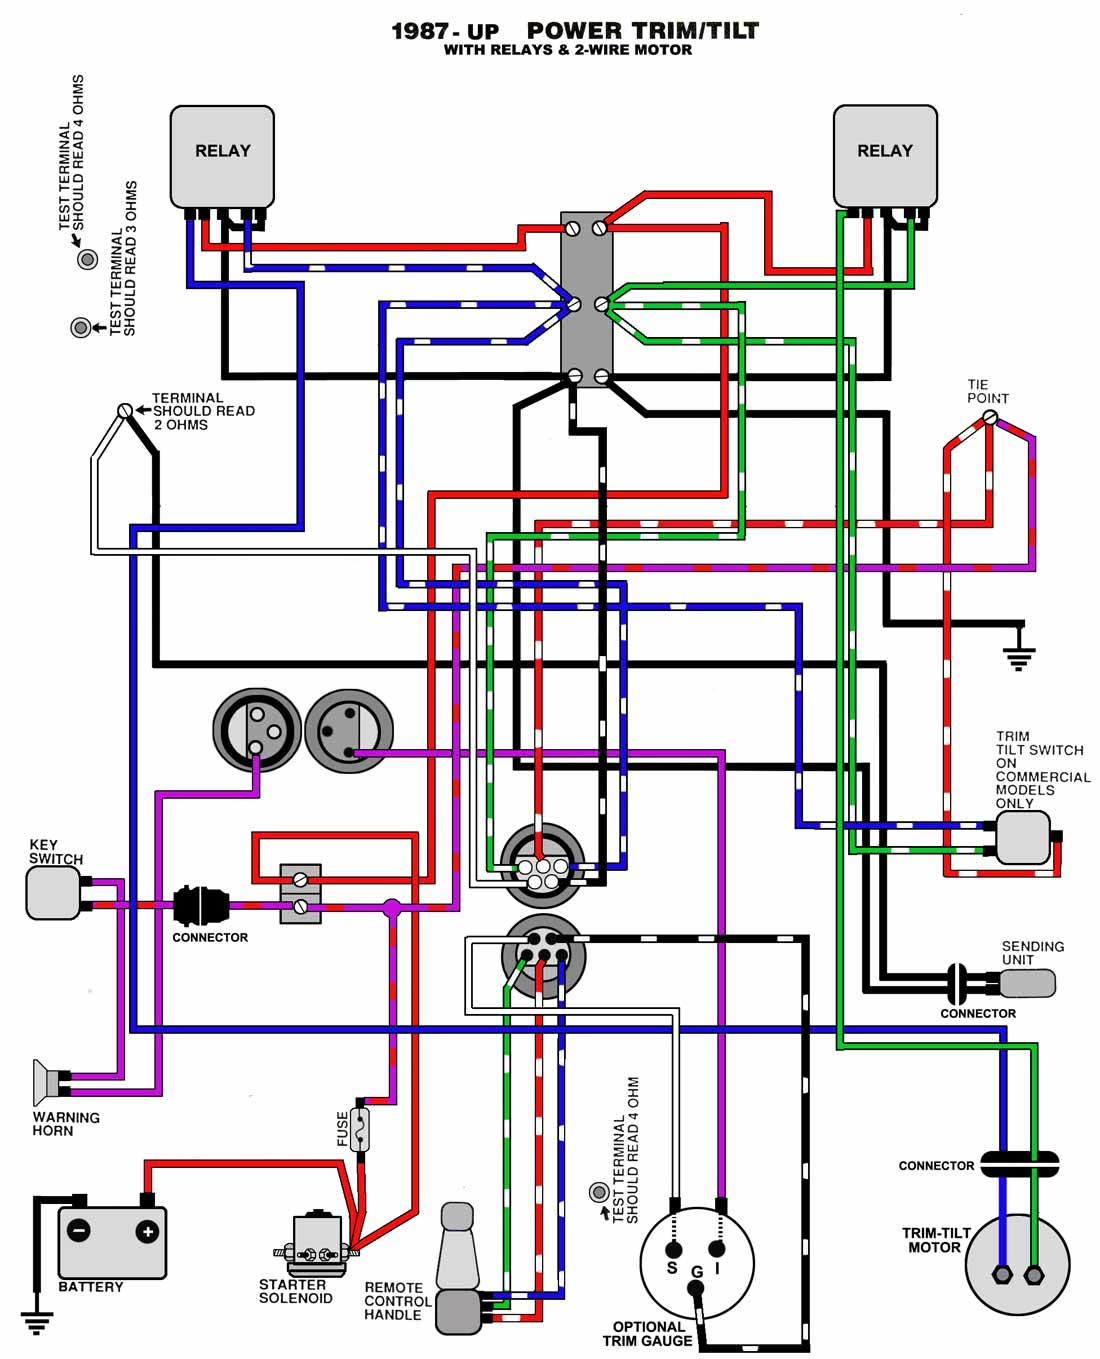 Tilt And Trim Wiring Diagram Diagrams Scematic Parrot Ck3100 15 Free Schematic Common Outboard Motor System Units